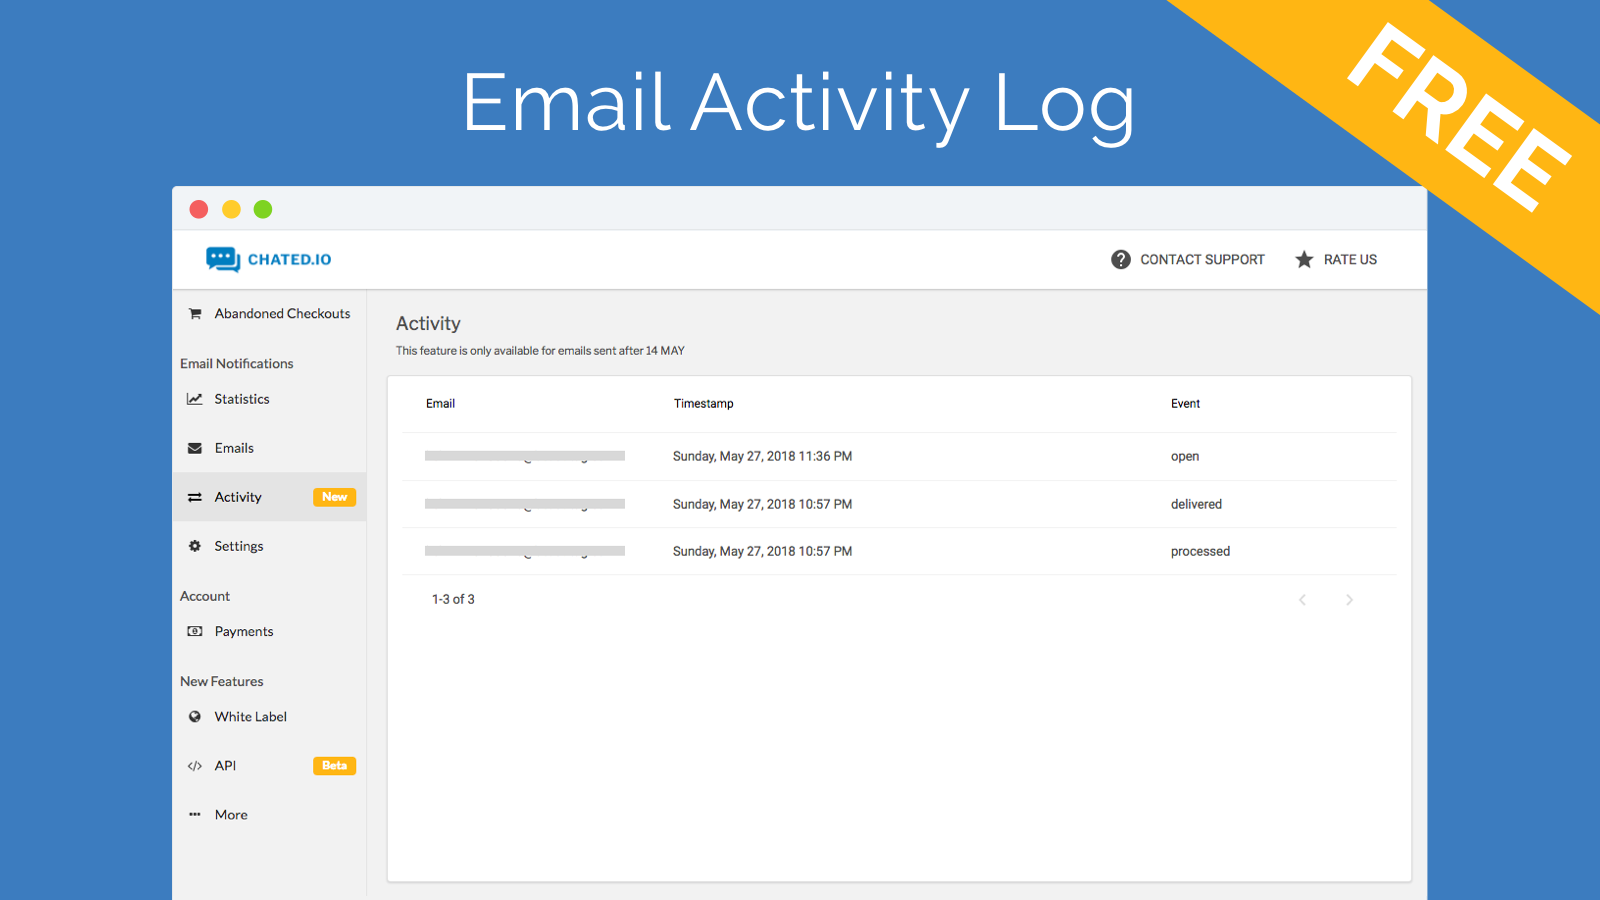 Email Activity Log